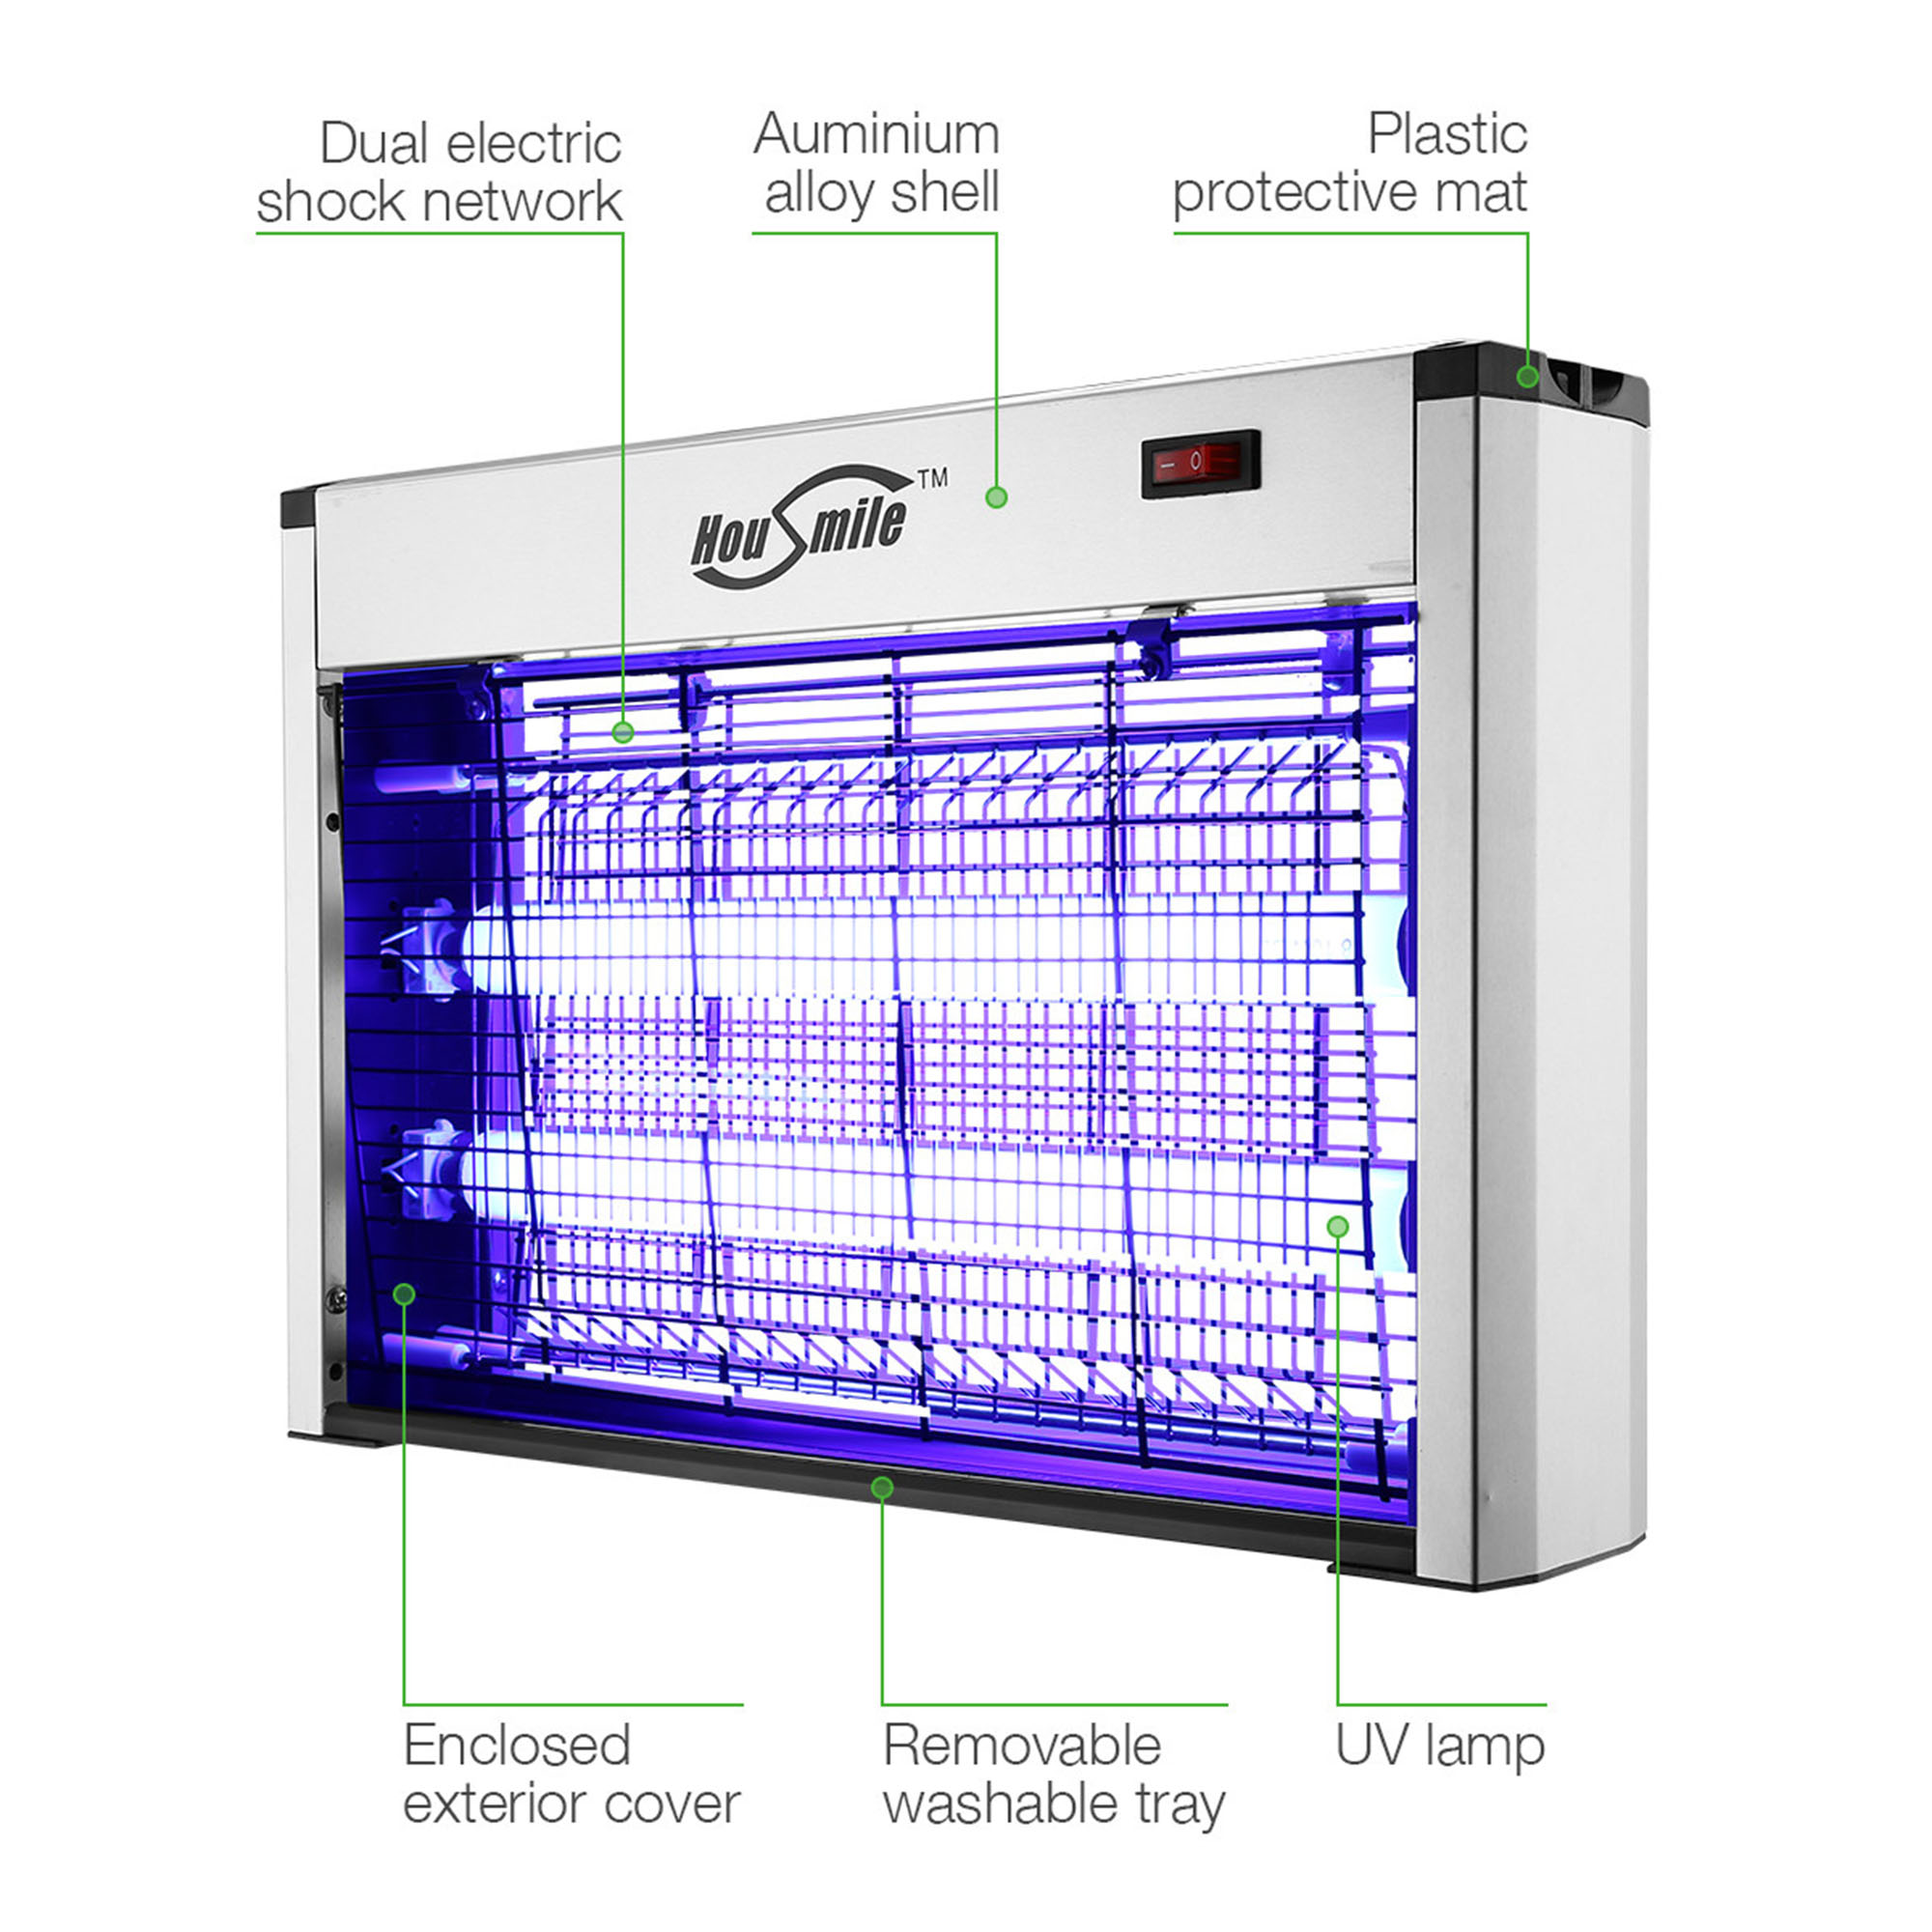 Housmile 20w Electronic Bug Zapper Insect Killer Mosquito Control Wiring Diagram Further Electric On Mosuiqto Fly